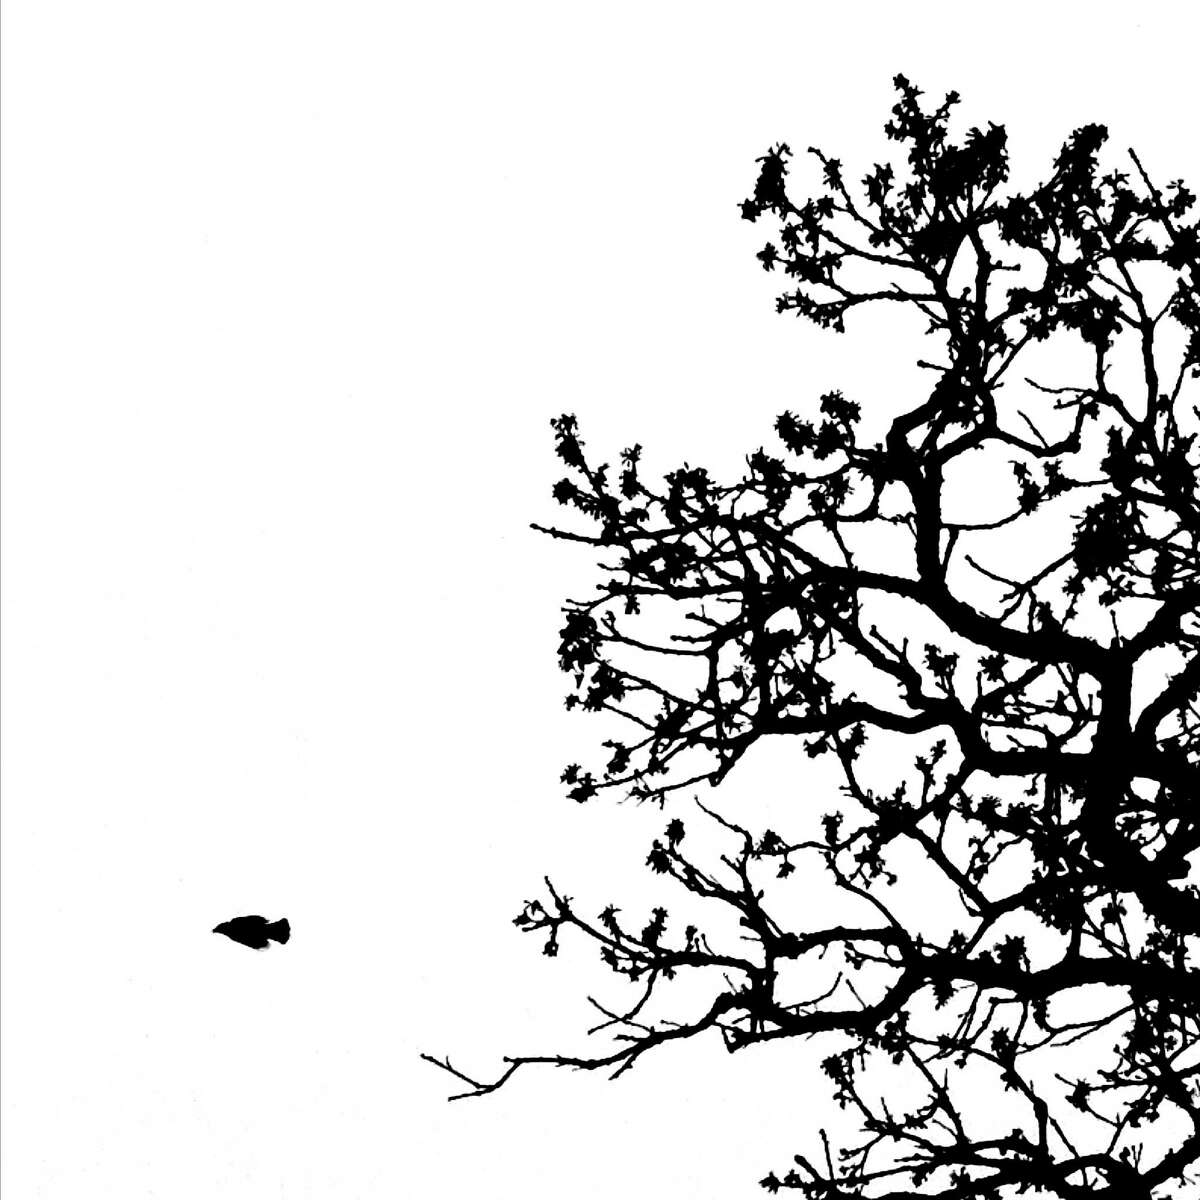 """Day 9, April 1, 2012. Like a dart, a starling flies from its perch amidst the barren branches of That Tree. That Tree is an ancient Bur Oak growing on the edge of a cornfield near Platteville, WI. Using his iPhone 4S, Mark Hirsch photographed the tree every day from March 24, 2012 until March 23, 2013 capturing a year long snapshot of life in and around the ancient oak. Photographs from the iPhone photo a day project """"That Tree"""", by Mark Hirsch."""